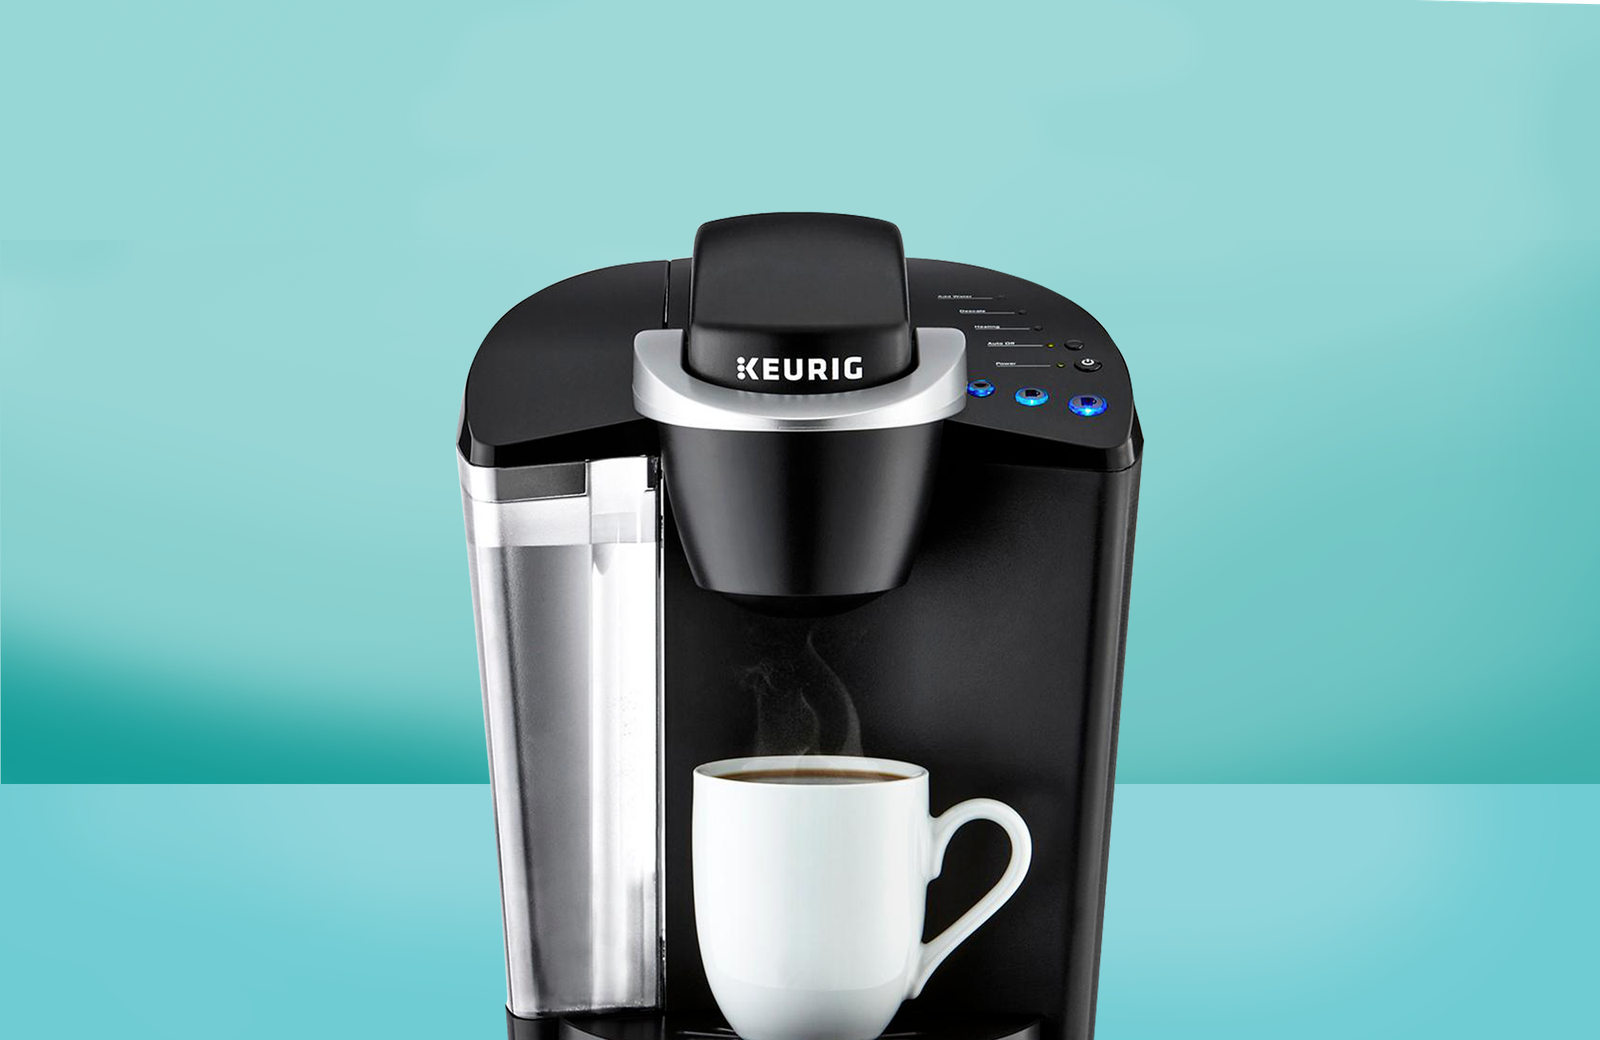 Yes You Have To Descale Your Keurig Coffee Maker Every Three